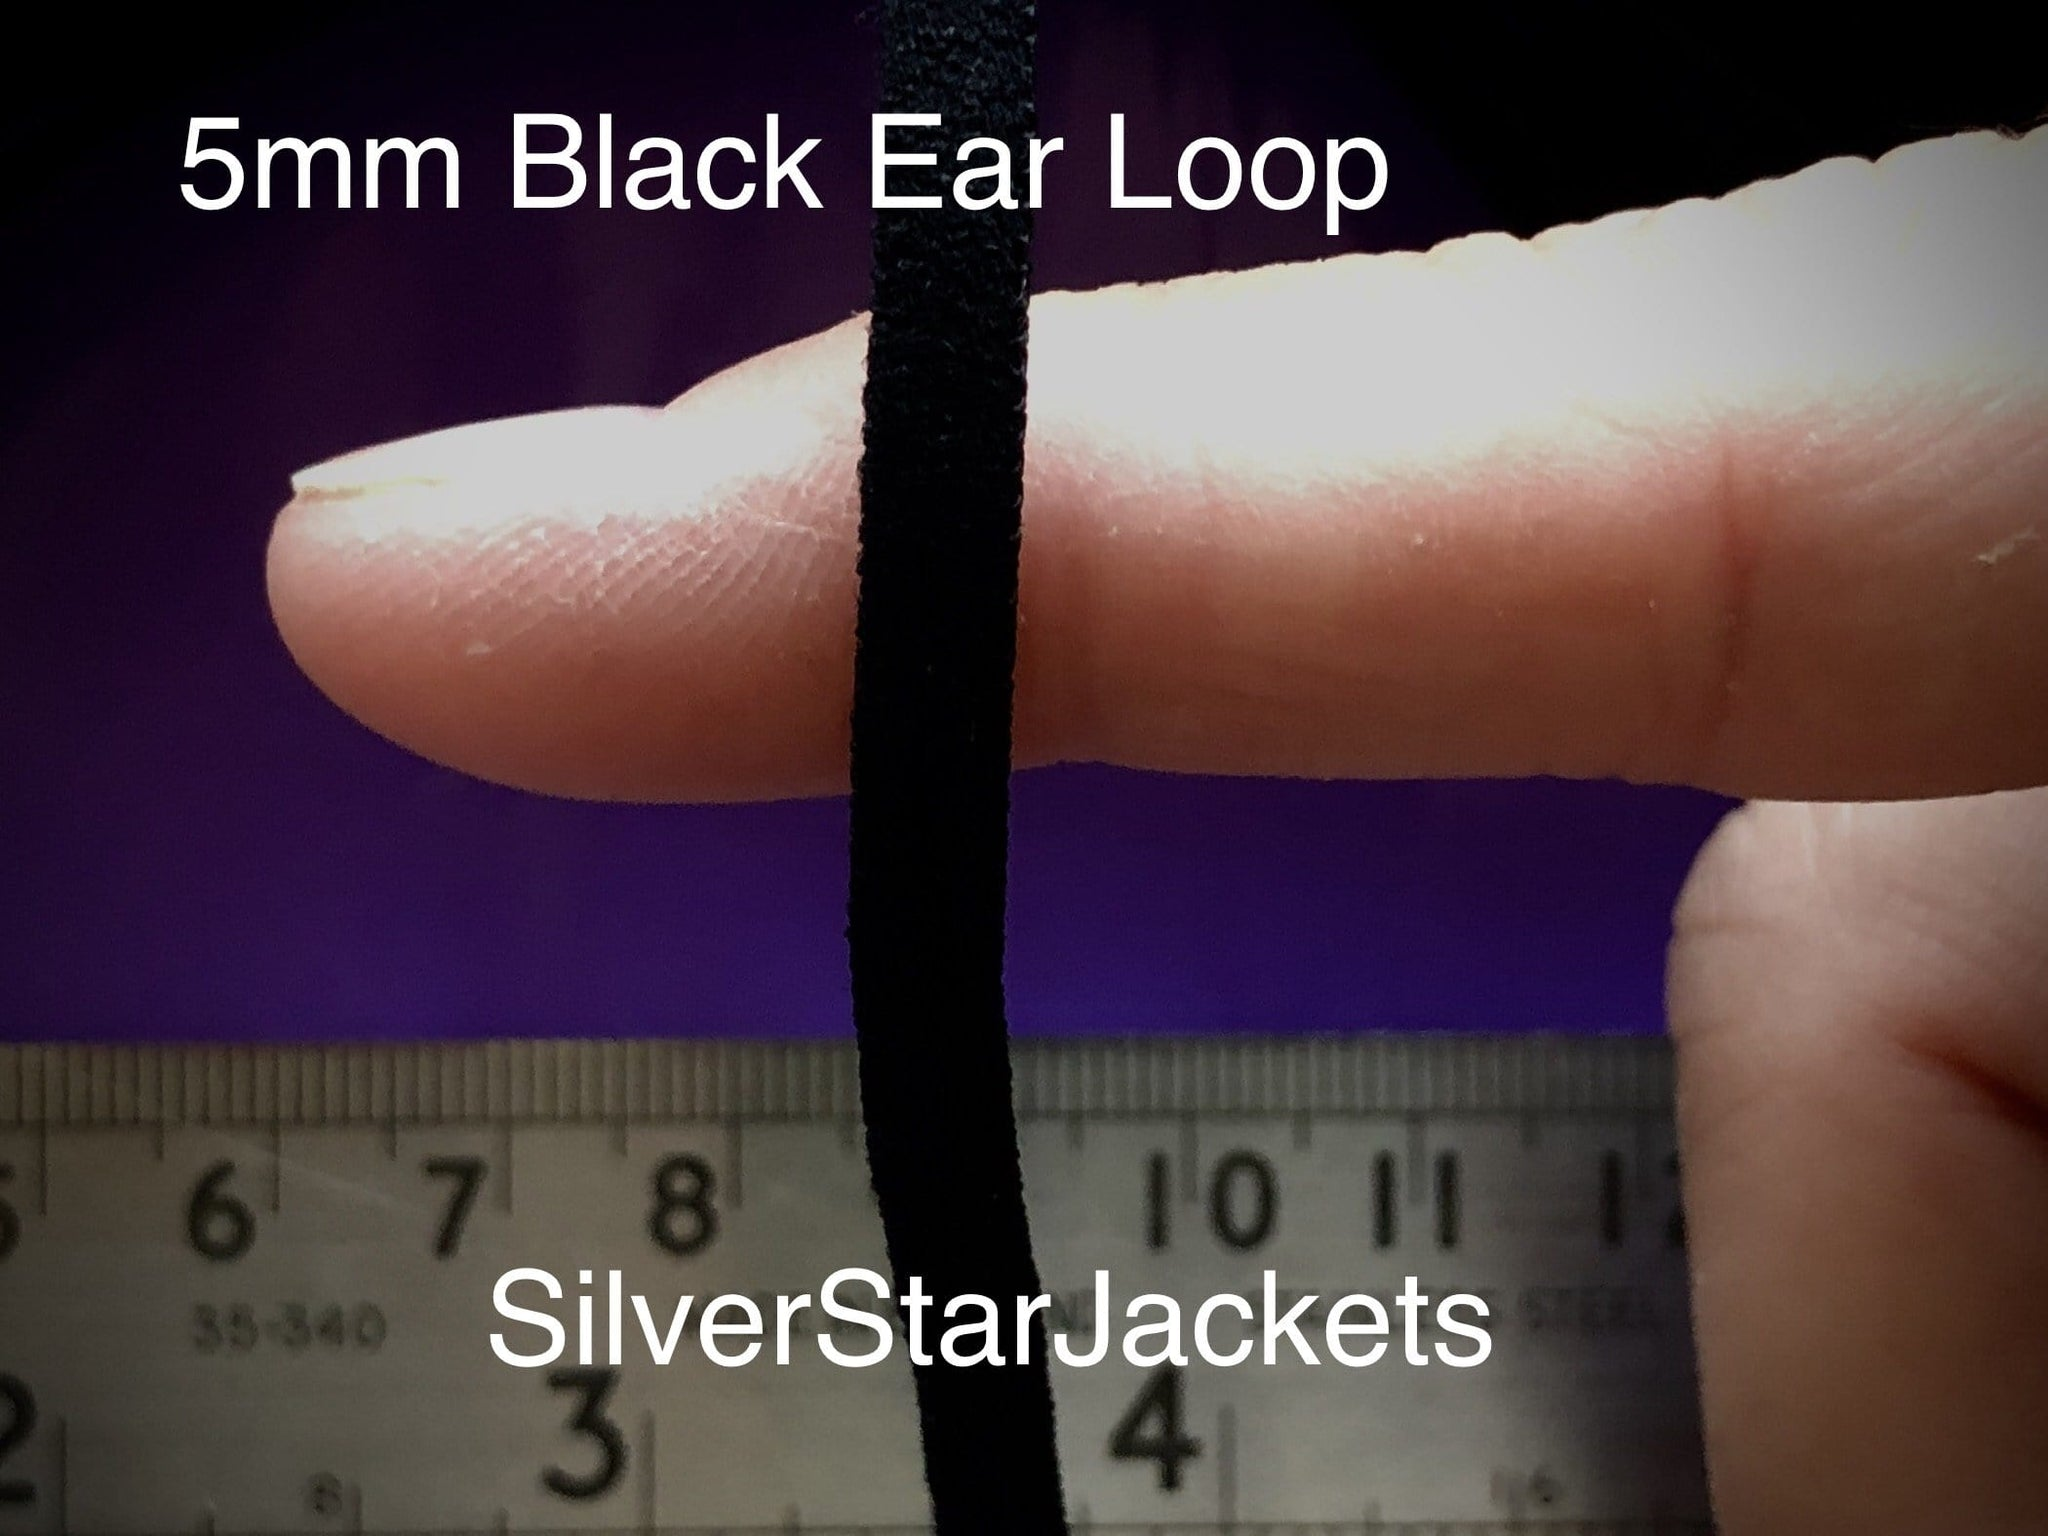 5mm flat, soft, loop elastic in BLACK for sewing face coverings. Sold in 10 and 20 yard bundles. Ships from Ohio.